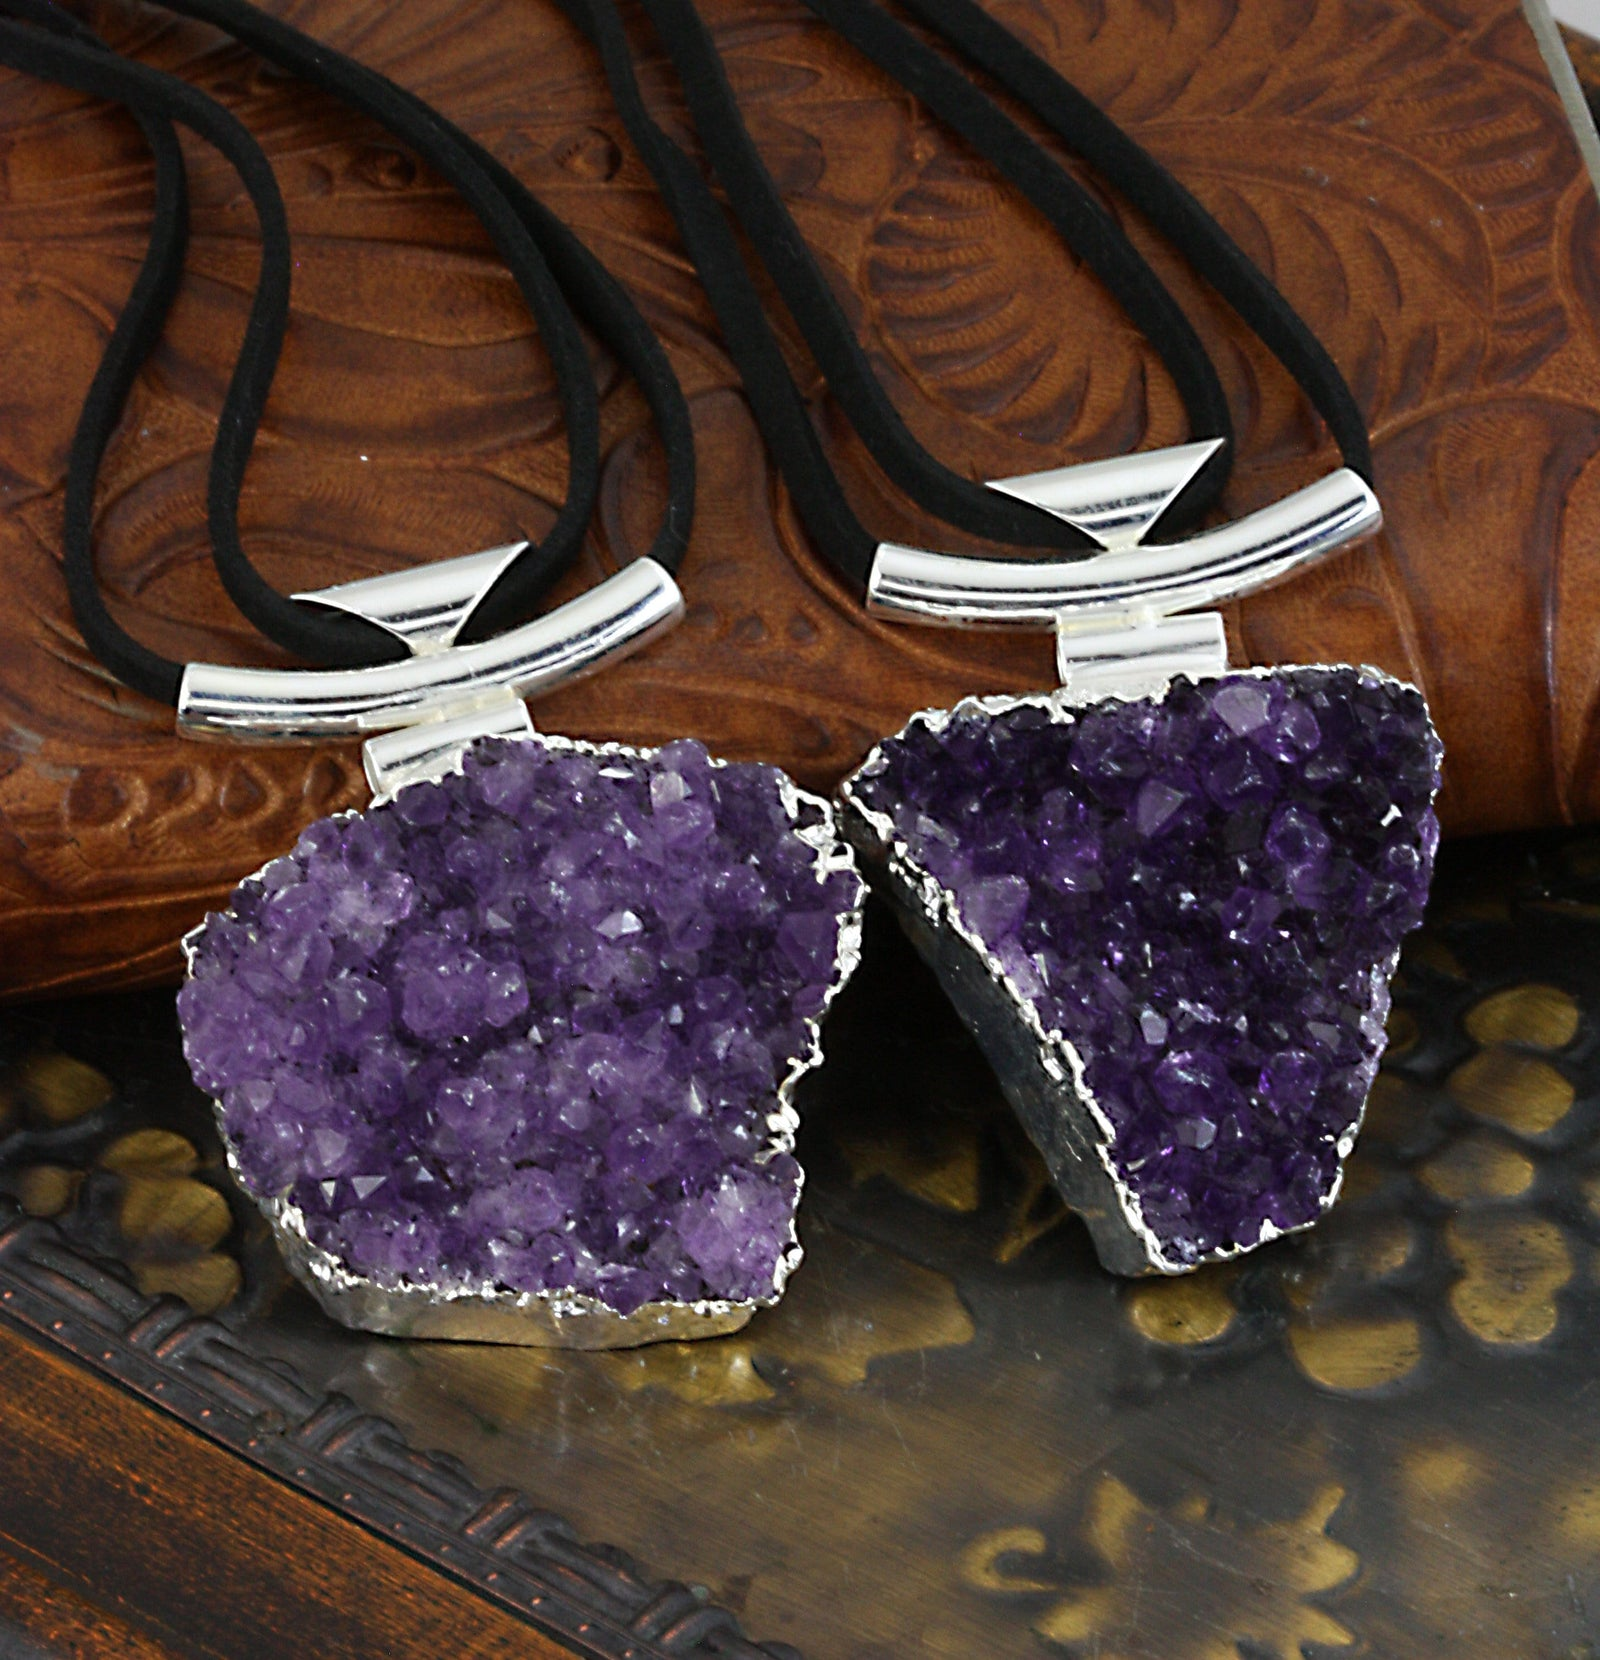 Necklace - Amethyst Quartz Cluster Necklace With Black Leather Cord In Silver Or 24k Gold Electroplated - (RK194) (RK191)